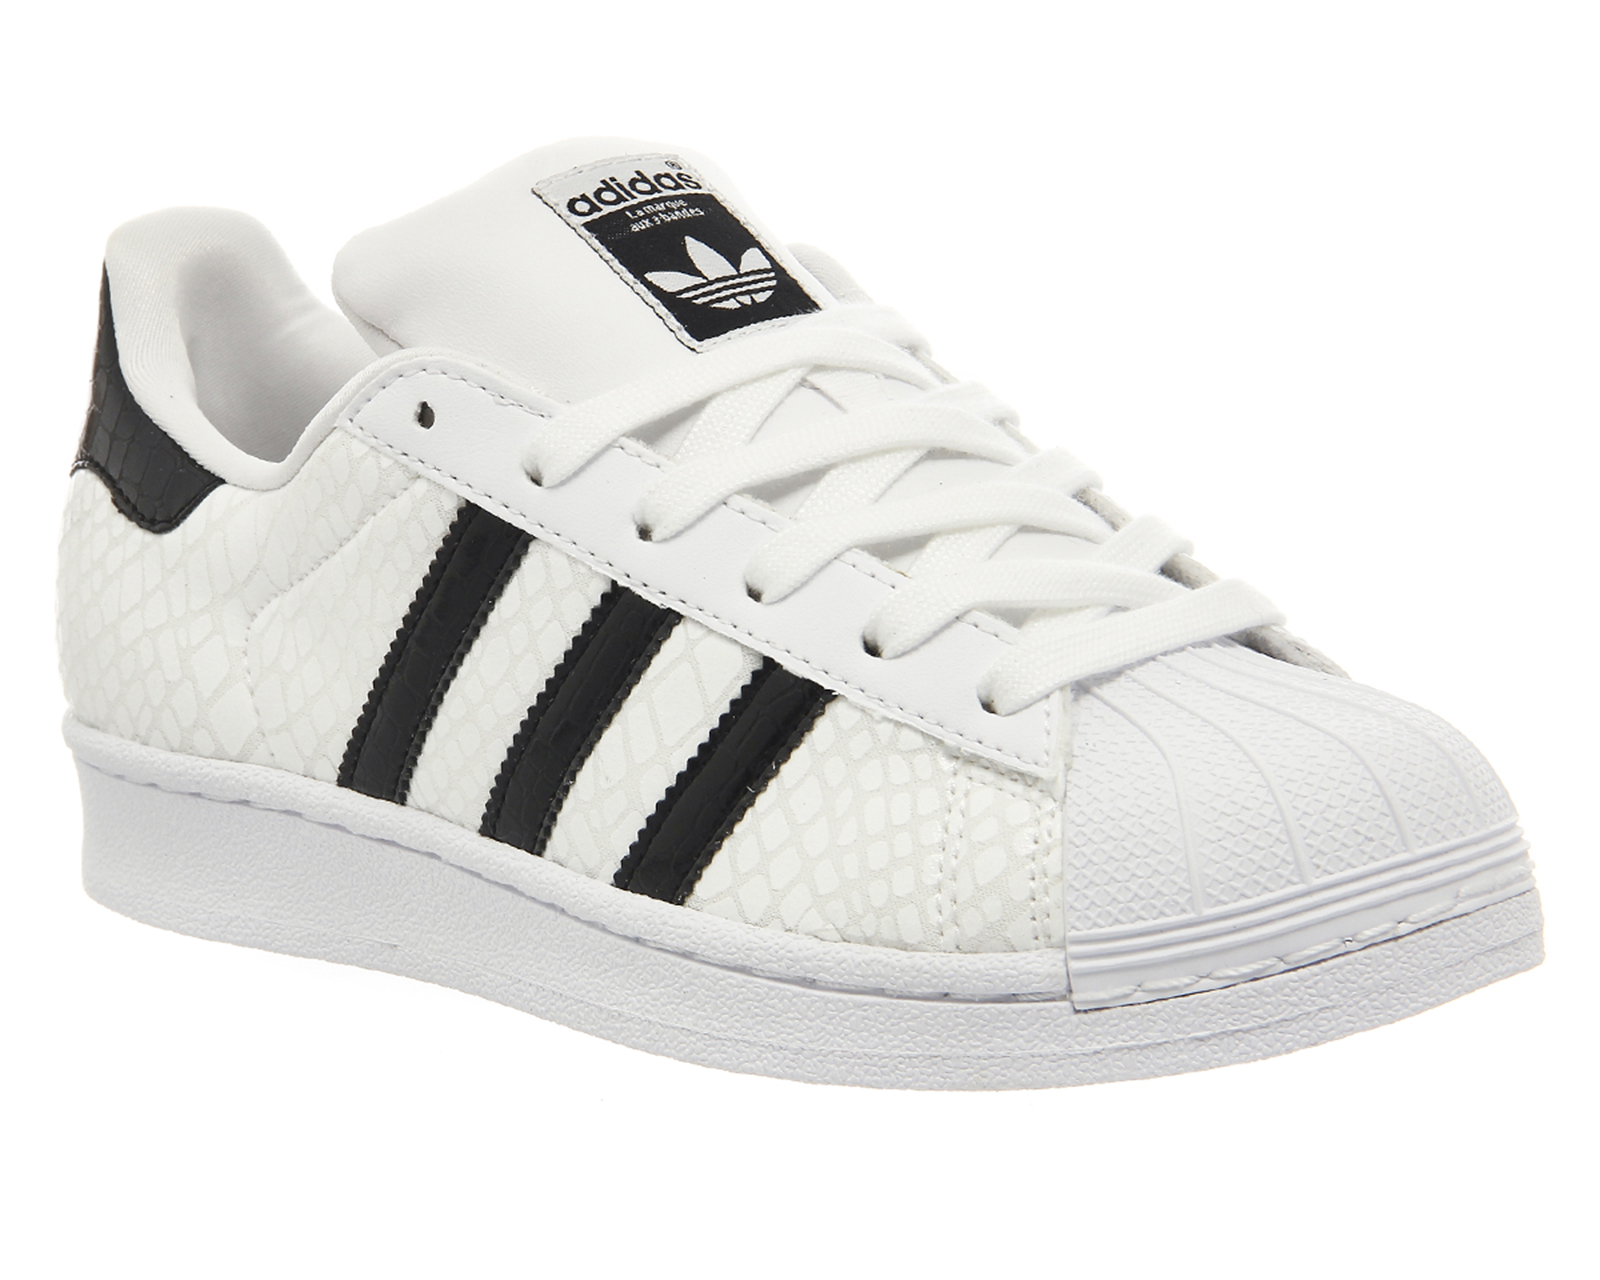 Adidas Shoes White With Black Stripes Womens